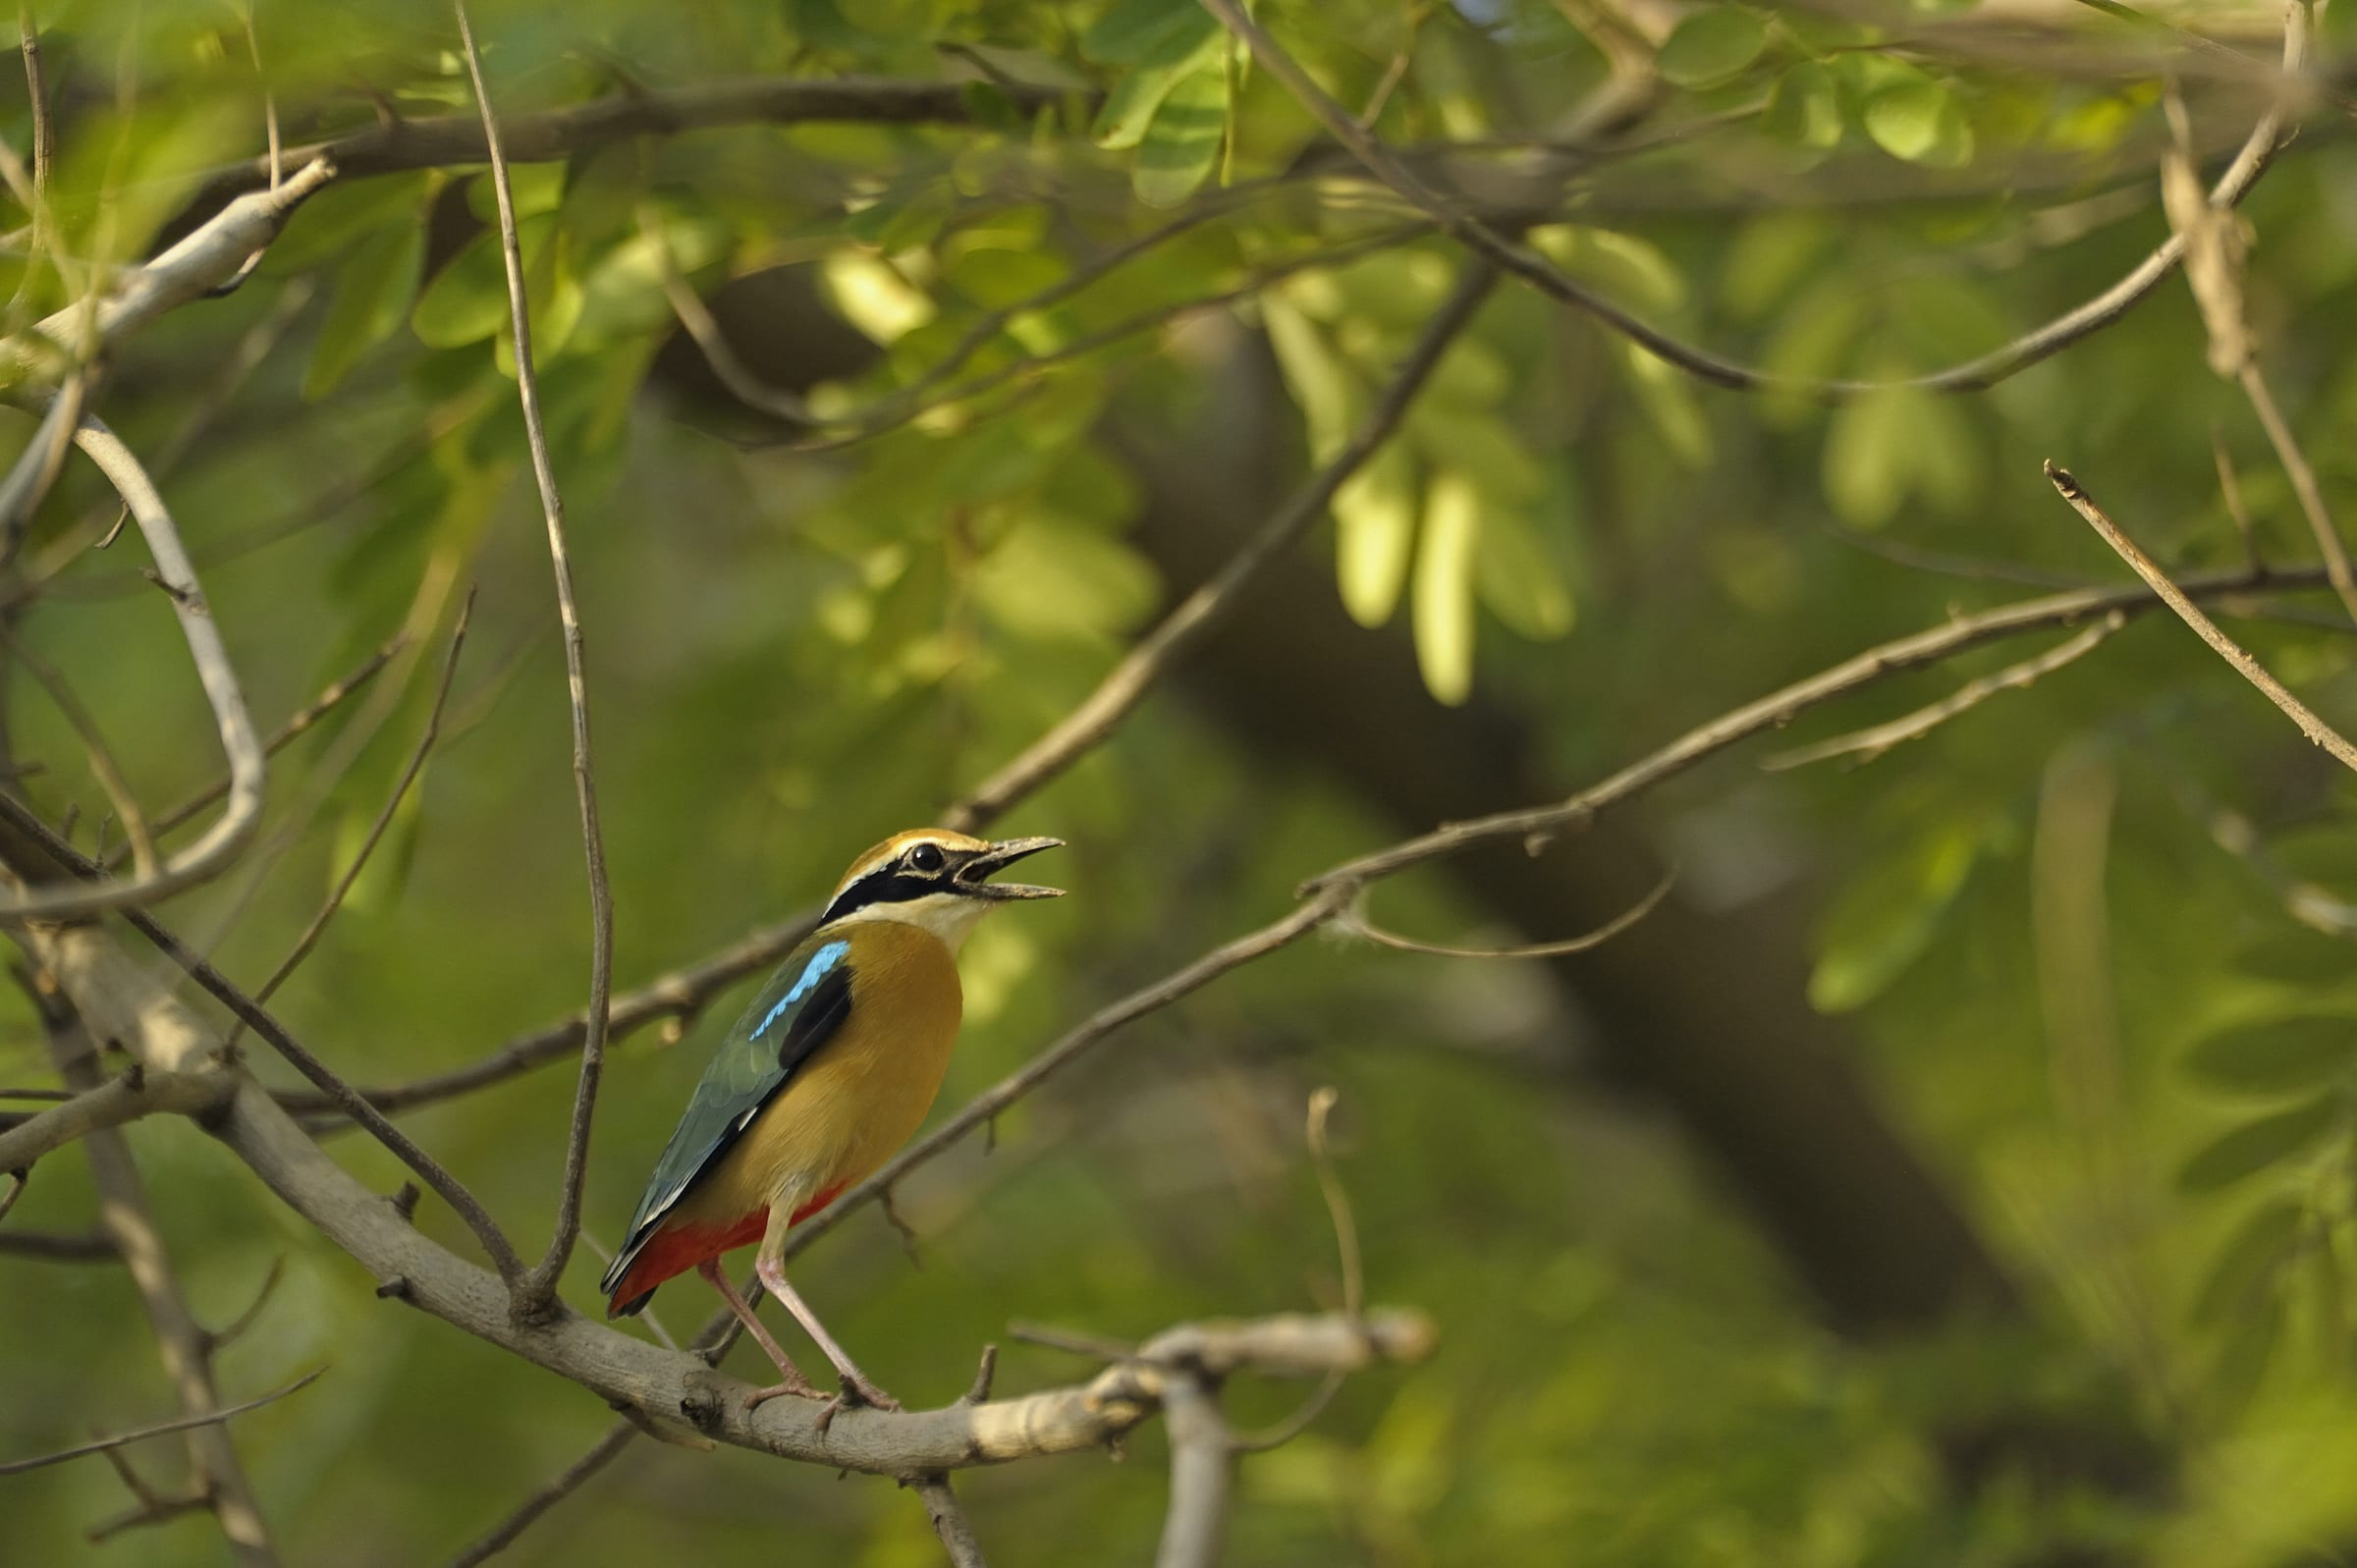 Dawn and dusk is when the Indian pitta is most active, throwing its head back and pointing its bill upwards, to emit a distinct, loud two-note whistle. Photo: Aditya Singh/Shutterstock